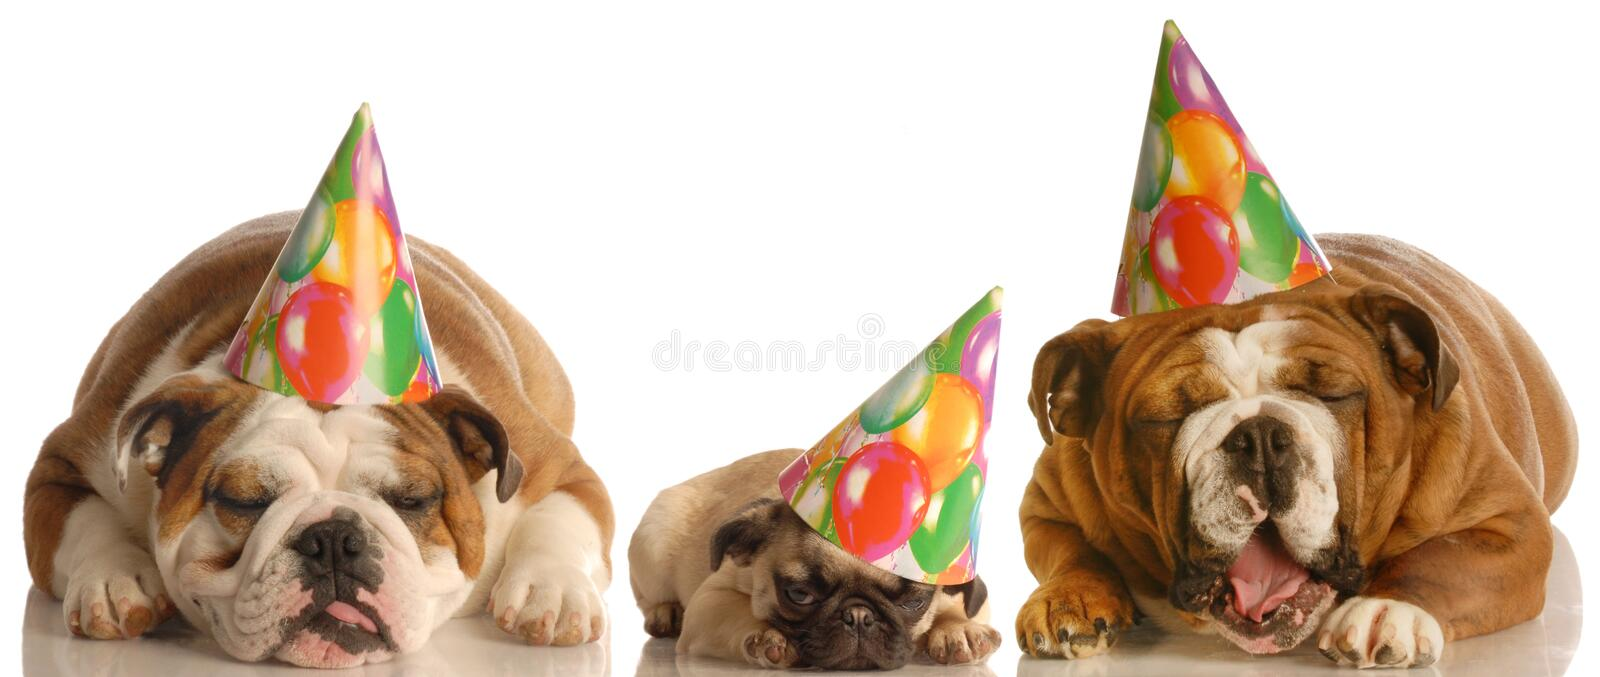 Funny groaning birthday dogs. Too much party - two english bulldogs and a pug wearing birthday hats royalty free stock photos